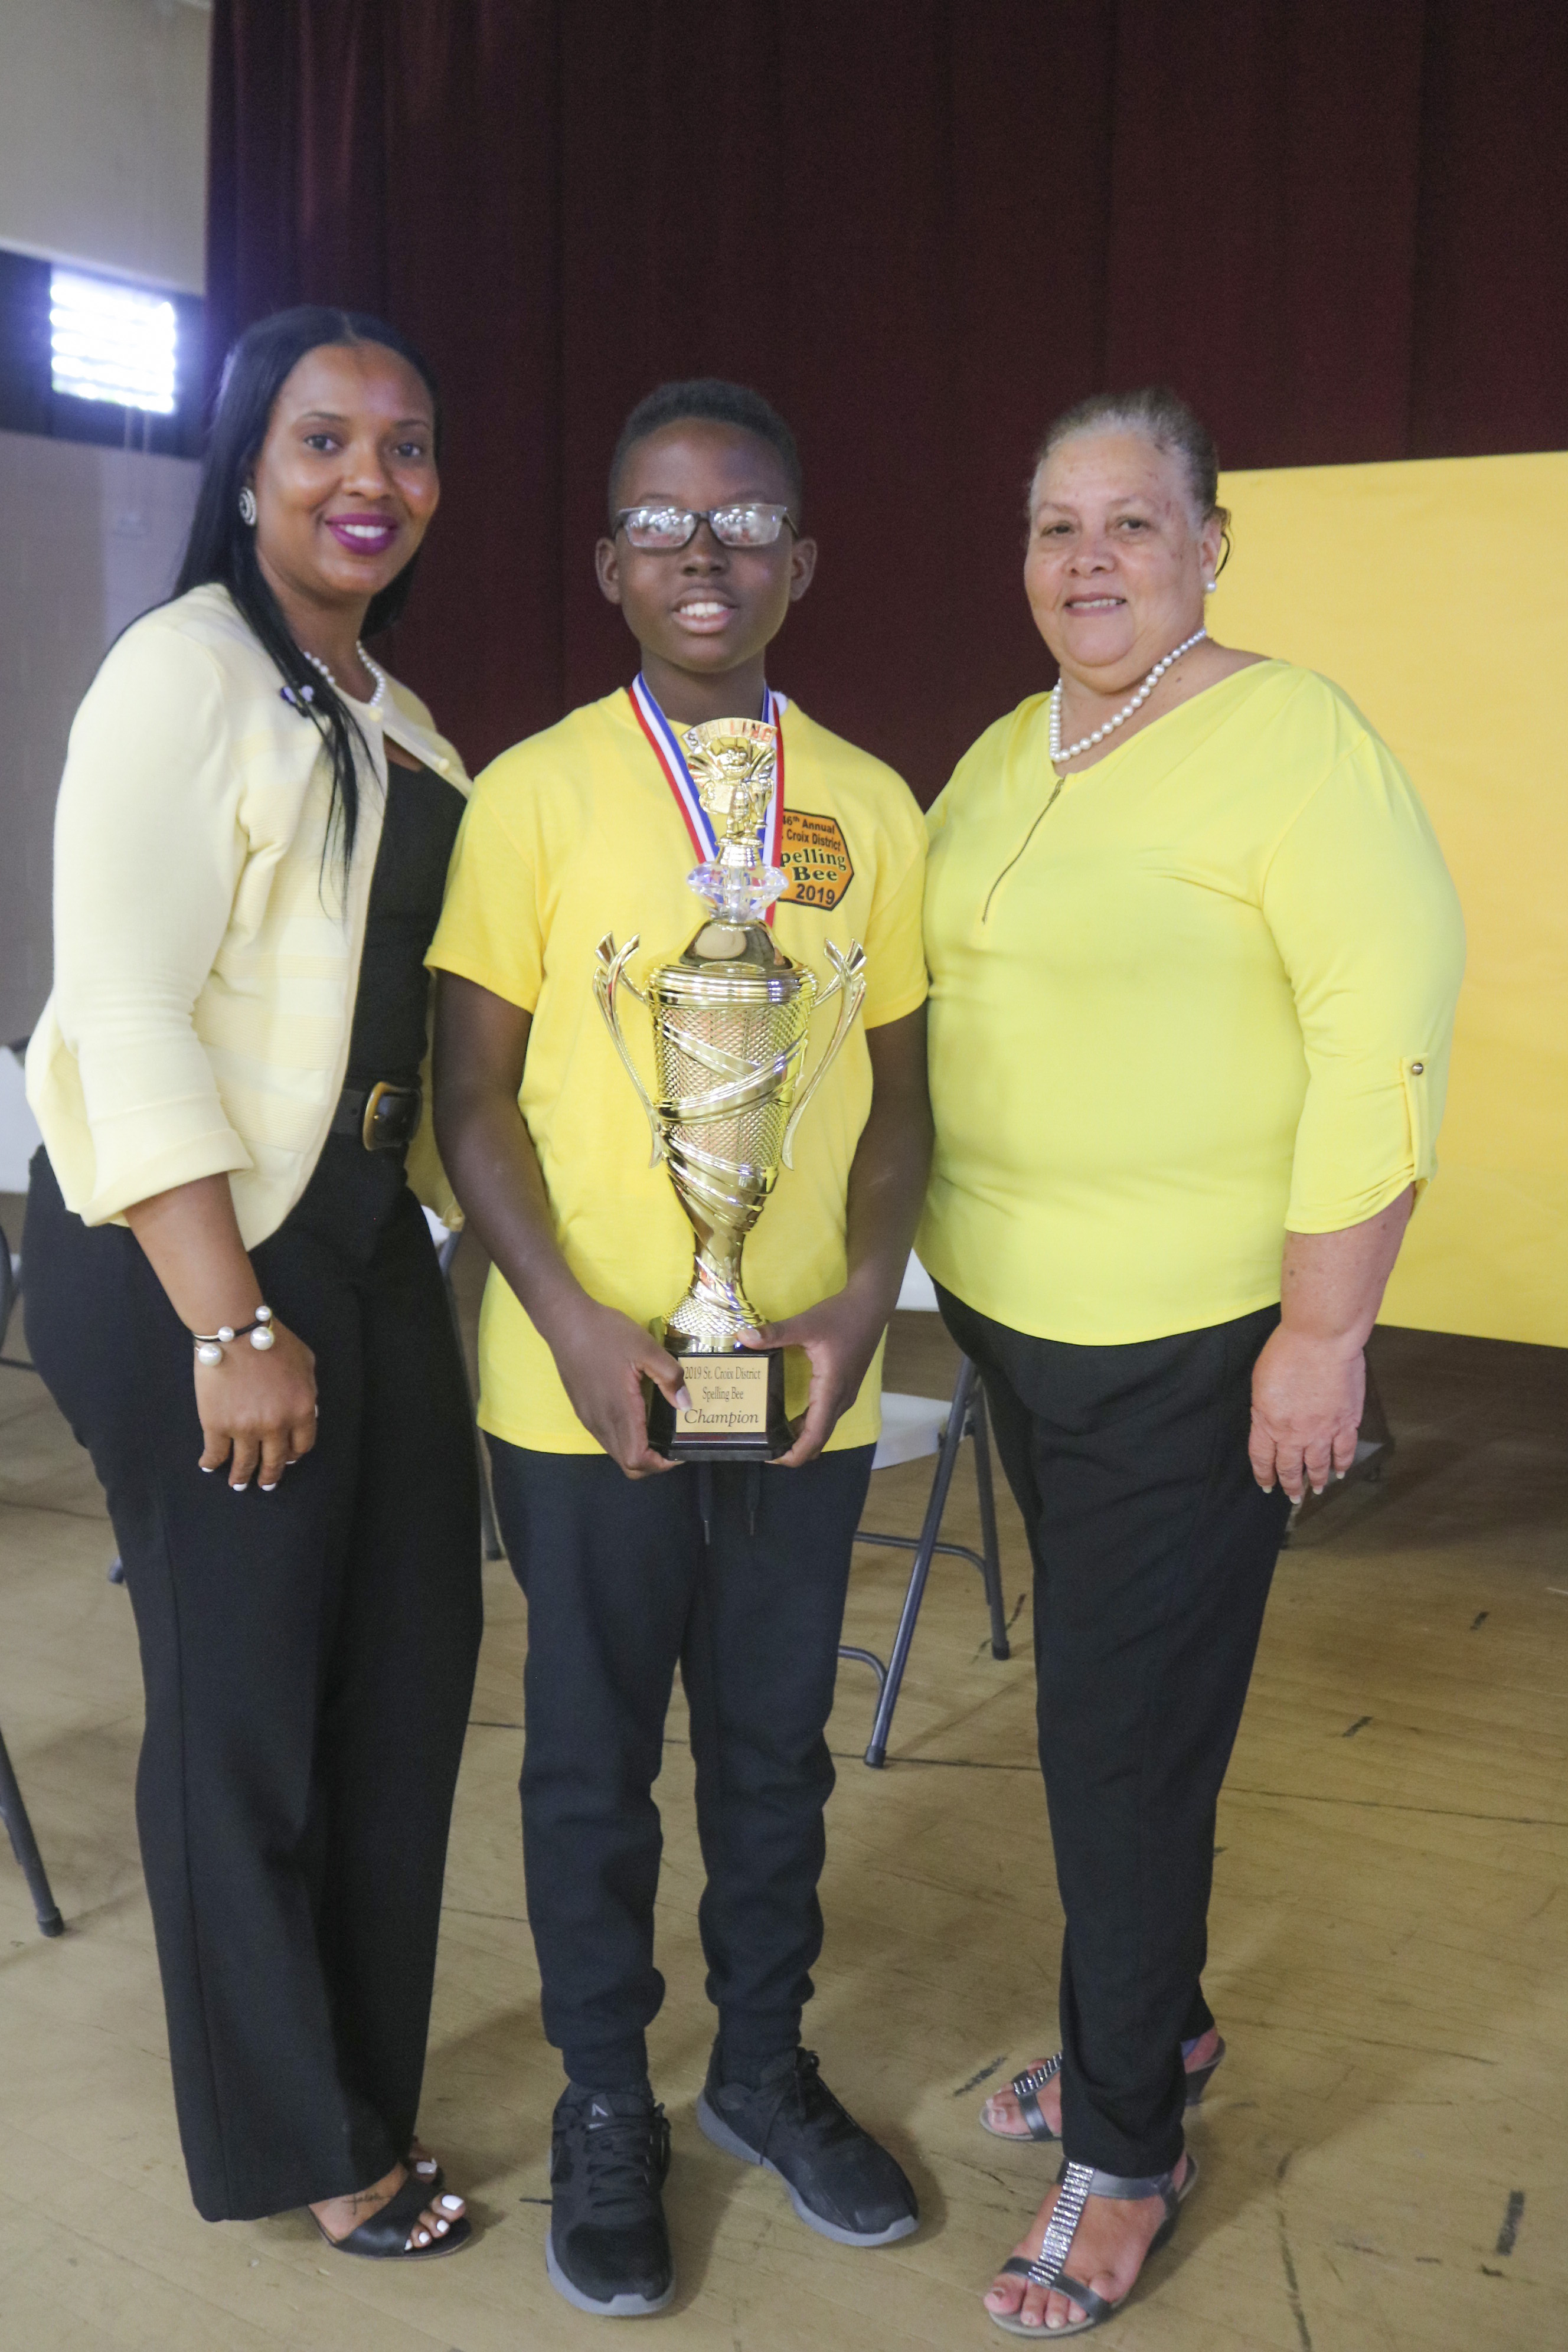 STX District Acting Deputy Superintendent Dr. Carla Bastian; STX District Spelling Bee Winner Michael Atwell and STX District Acting Insular Superintendent Maria Encarnacion.jpg